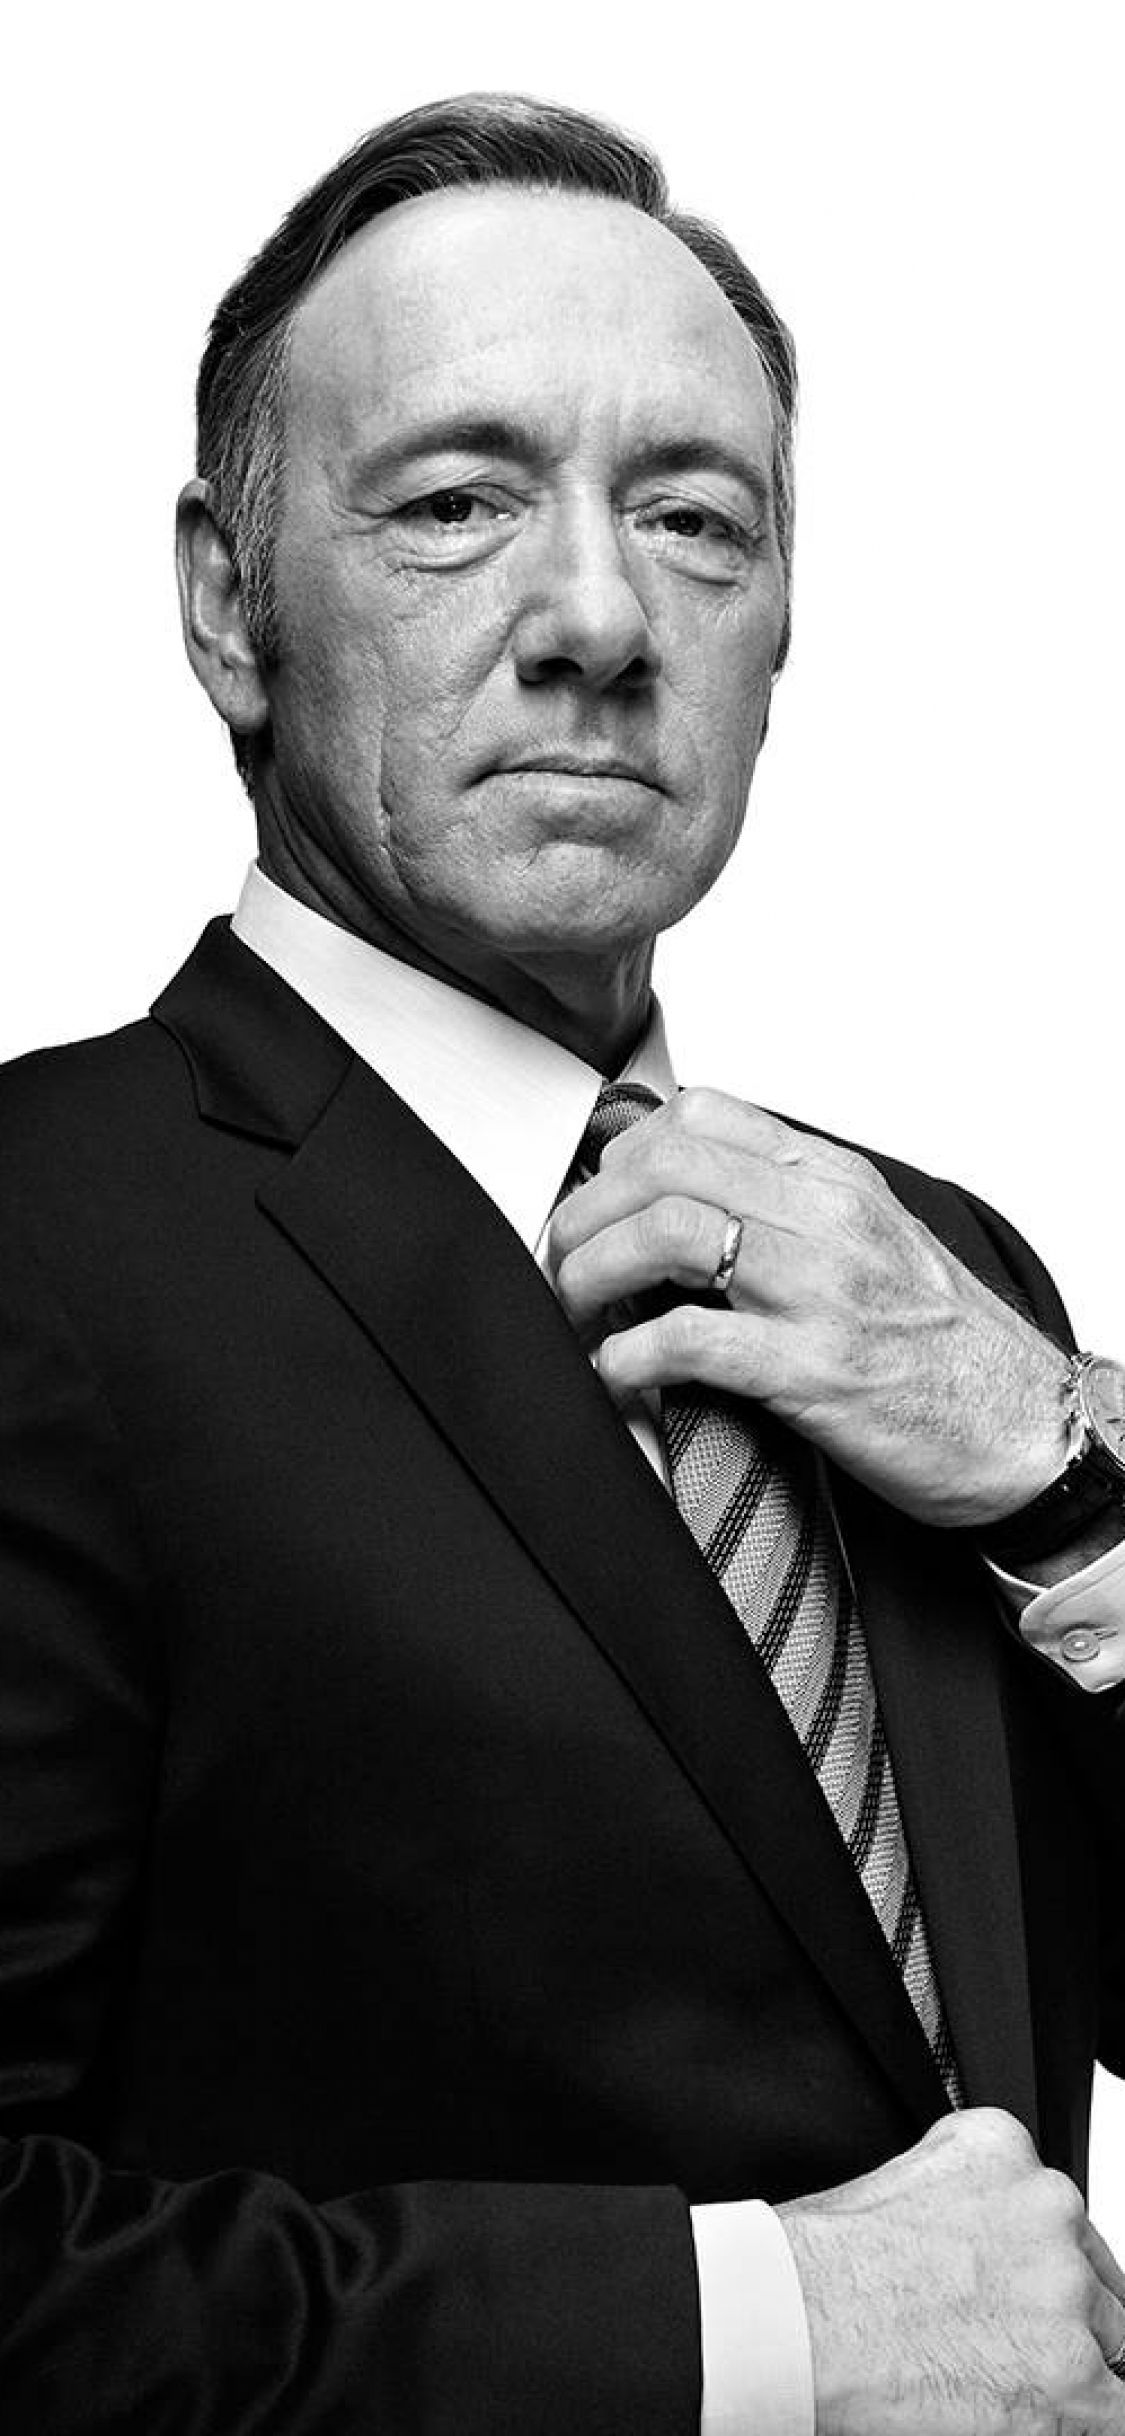 Iphone X House Of Cards Wallpaper Kevin Spacey Frank Underwood